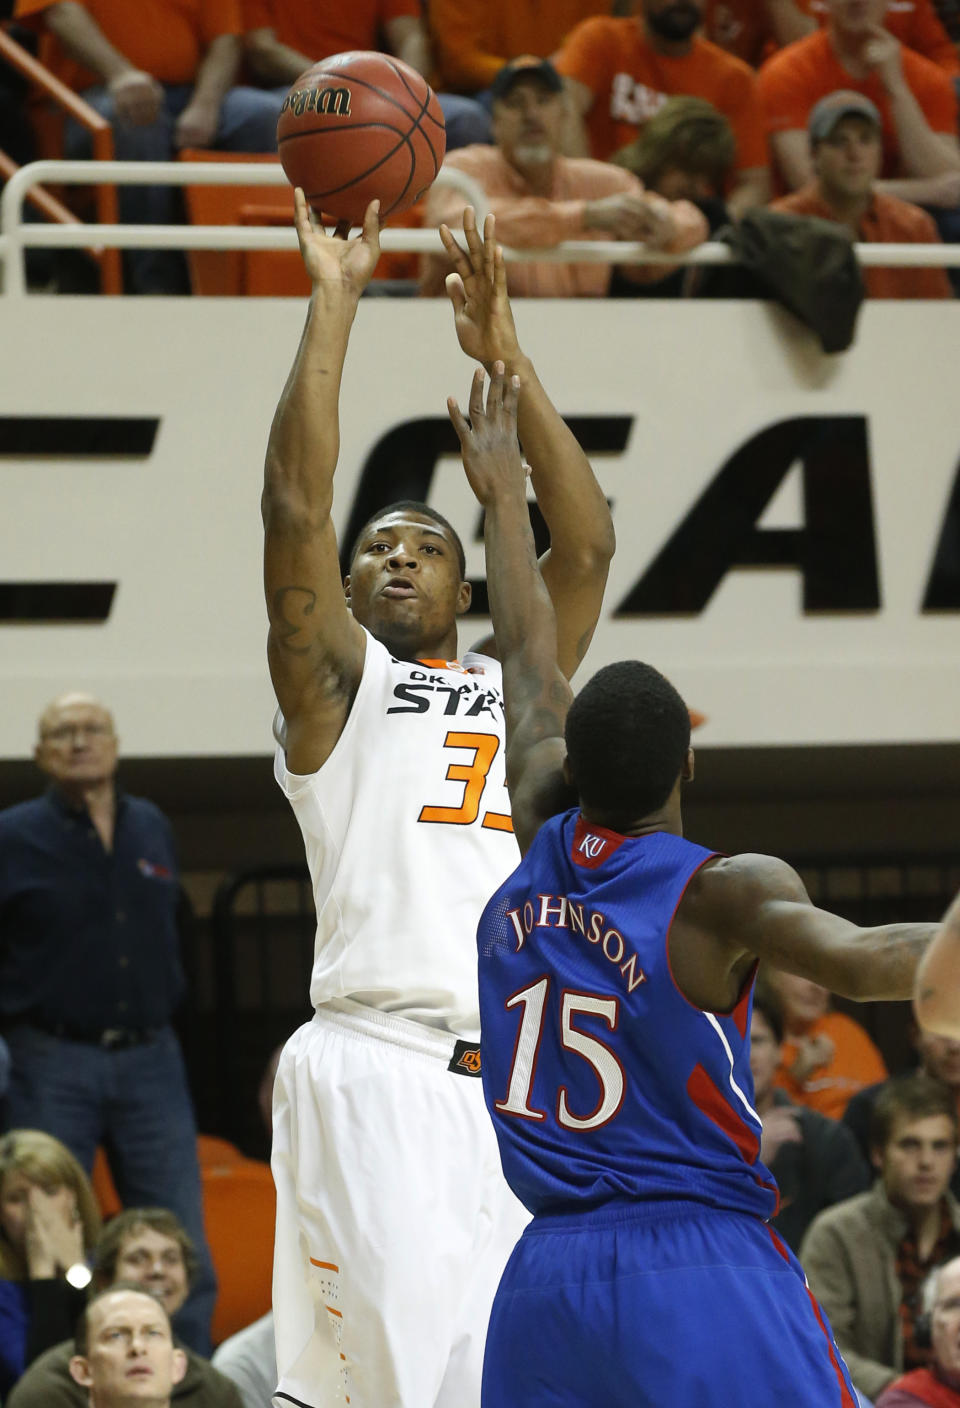 Oklahoma State guard Marcus Smart (33) shoots over Kansas guard Elijah Johnson (15) during the first half of an NCAA college basketball game in Stillwater, Okla., Wednesday, Feb. 20, 2013. (AP Photo/Sue Ogrocki)